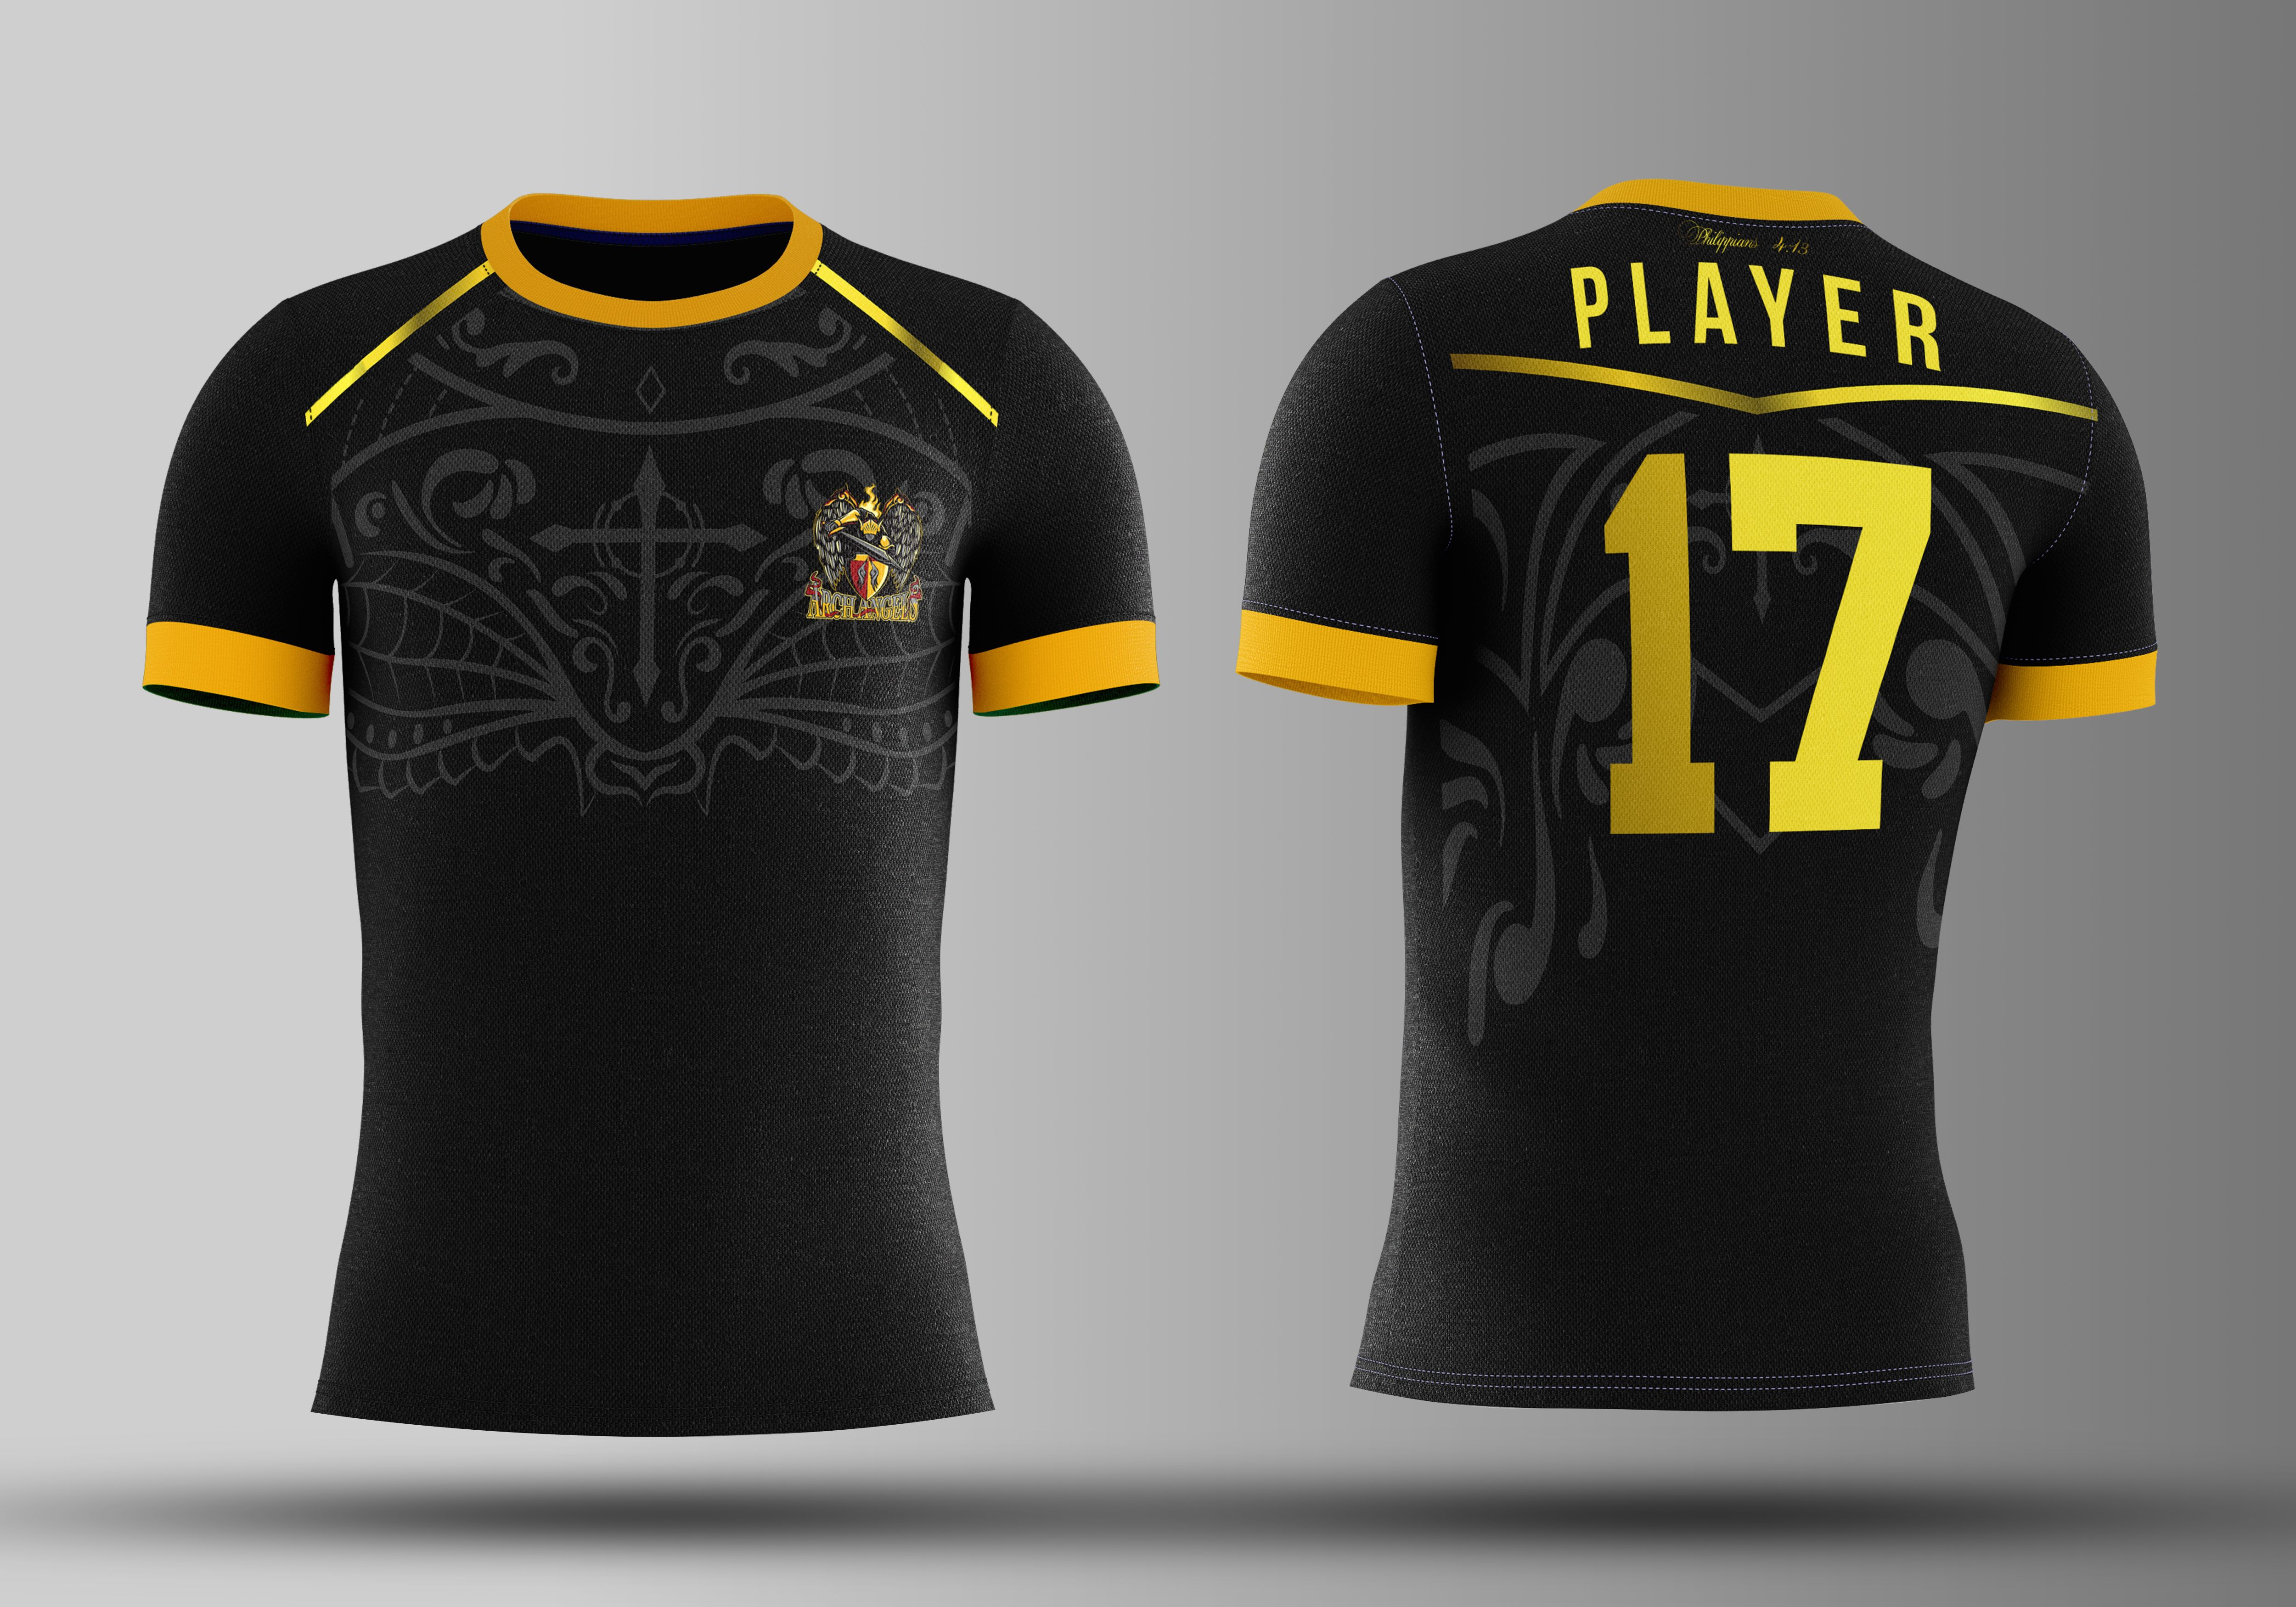 Download I Will Design Jersey For Esports Soccer Etc In 24 Hours Sleeves Clothing Jersey Sport T Shirt